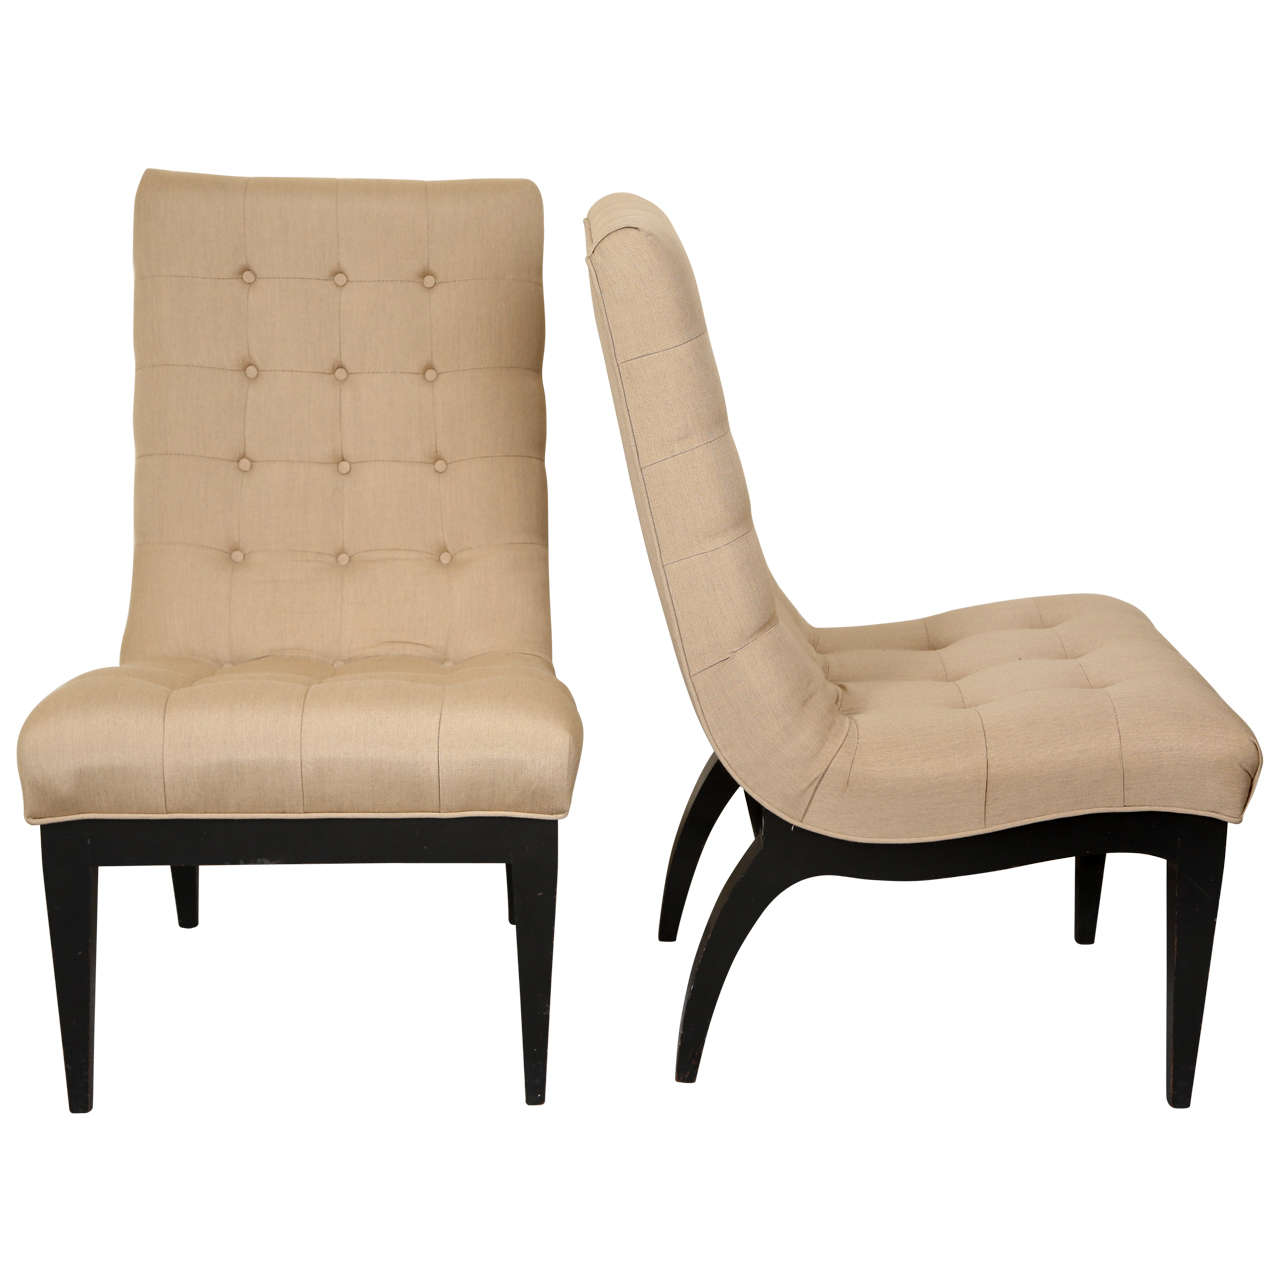 Pair of slipper chairs by james mont for sale at 1stdibs for Slipper chair